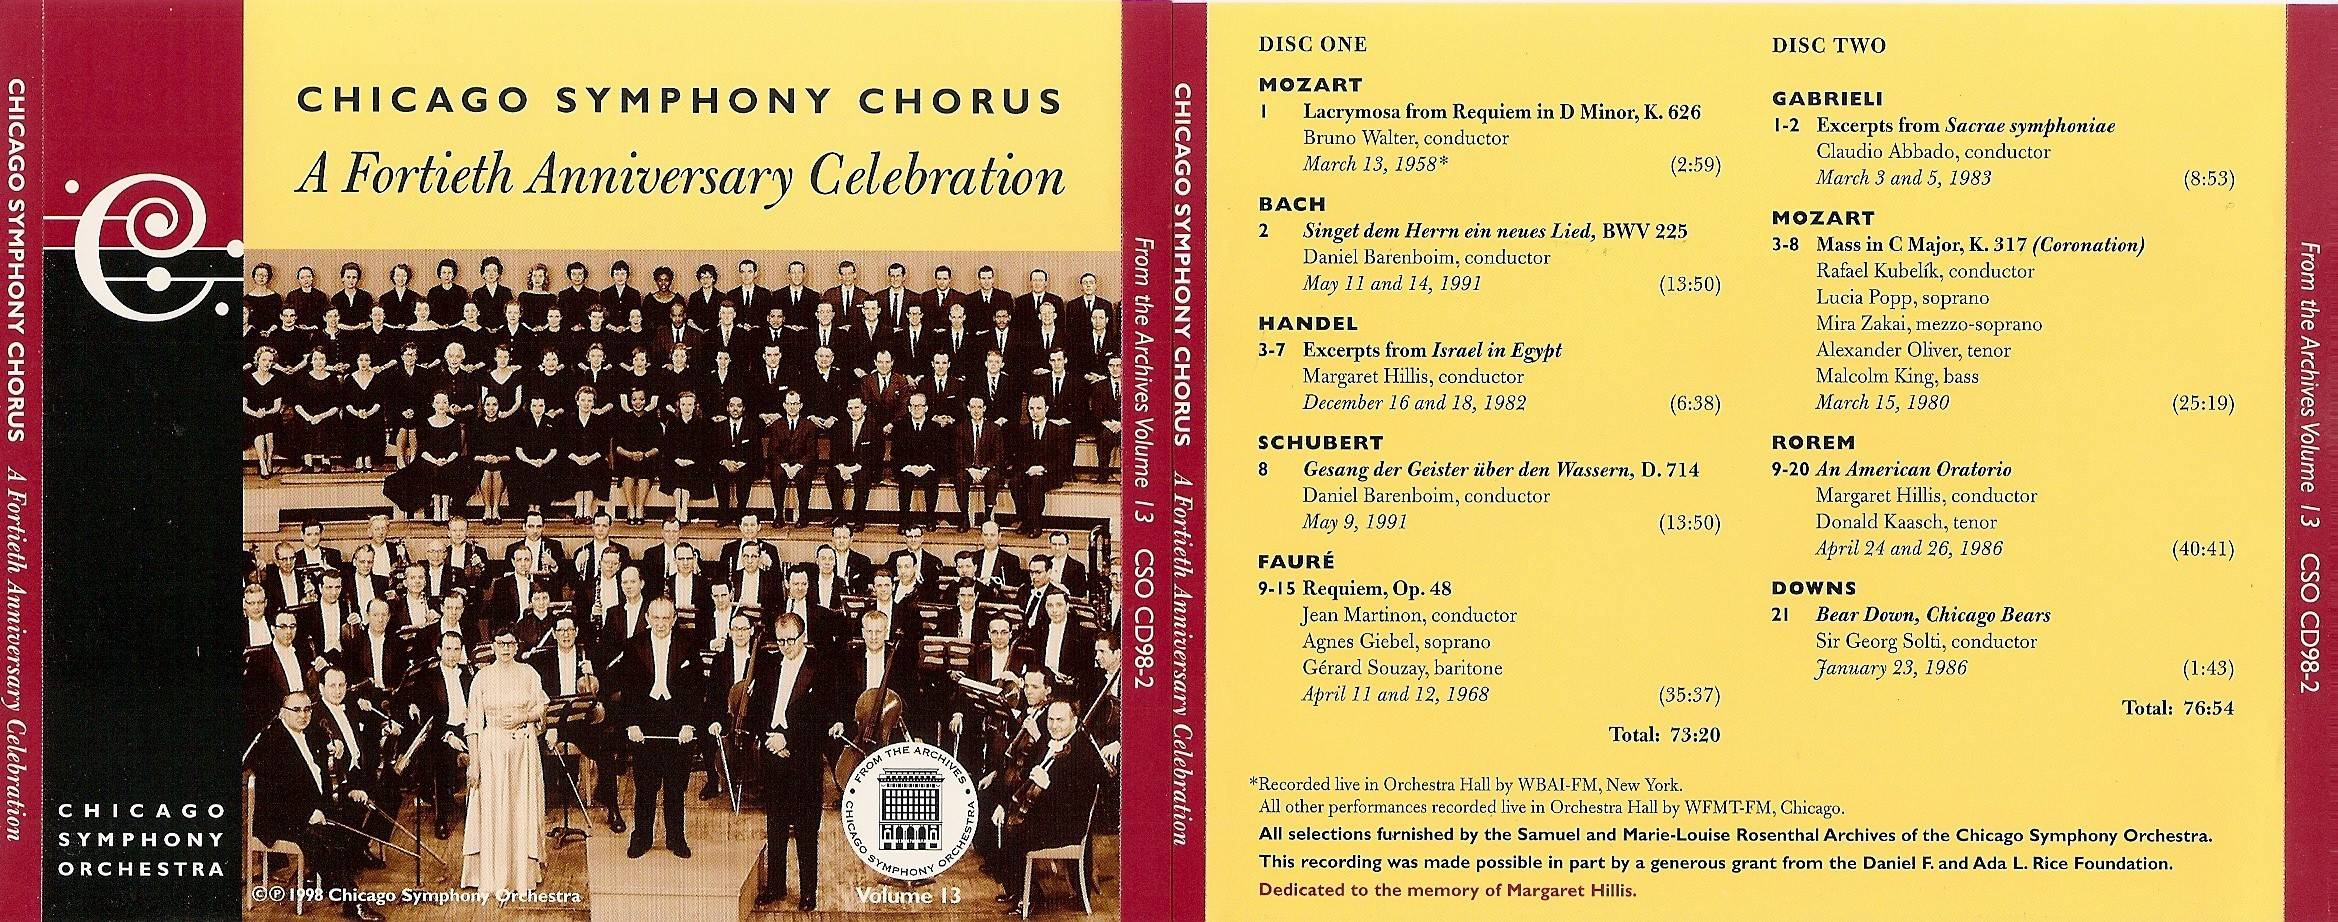 Chicago Symphony Orchestra - From The Archives, Vol.13: The CSO Chorus: A 40th Anniversary Celebration, 2-CD set (1998)